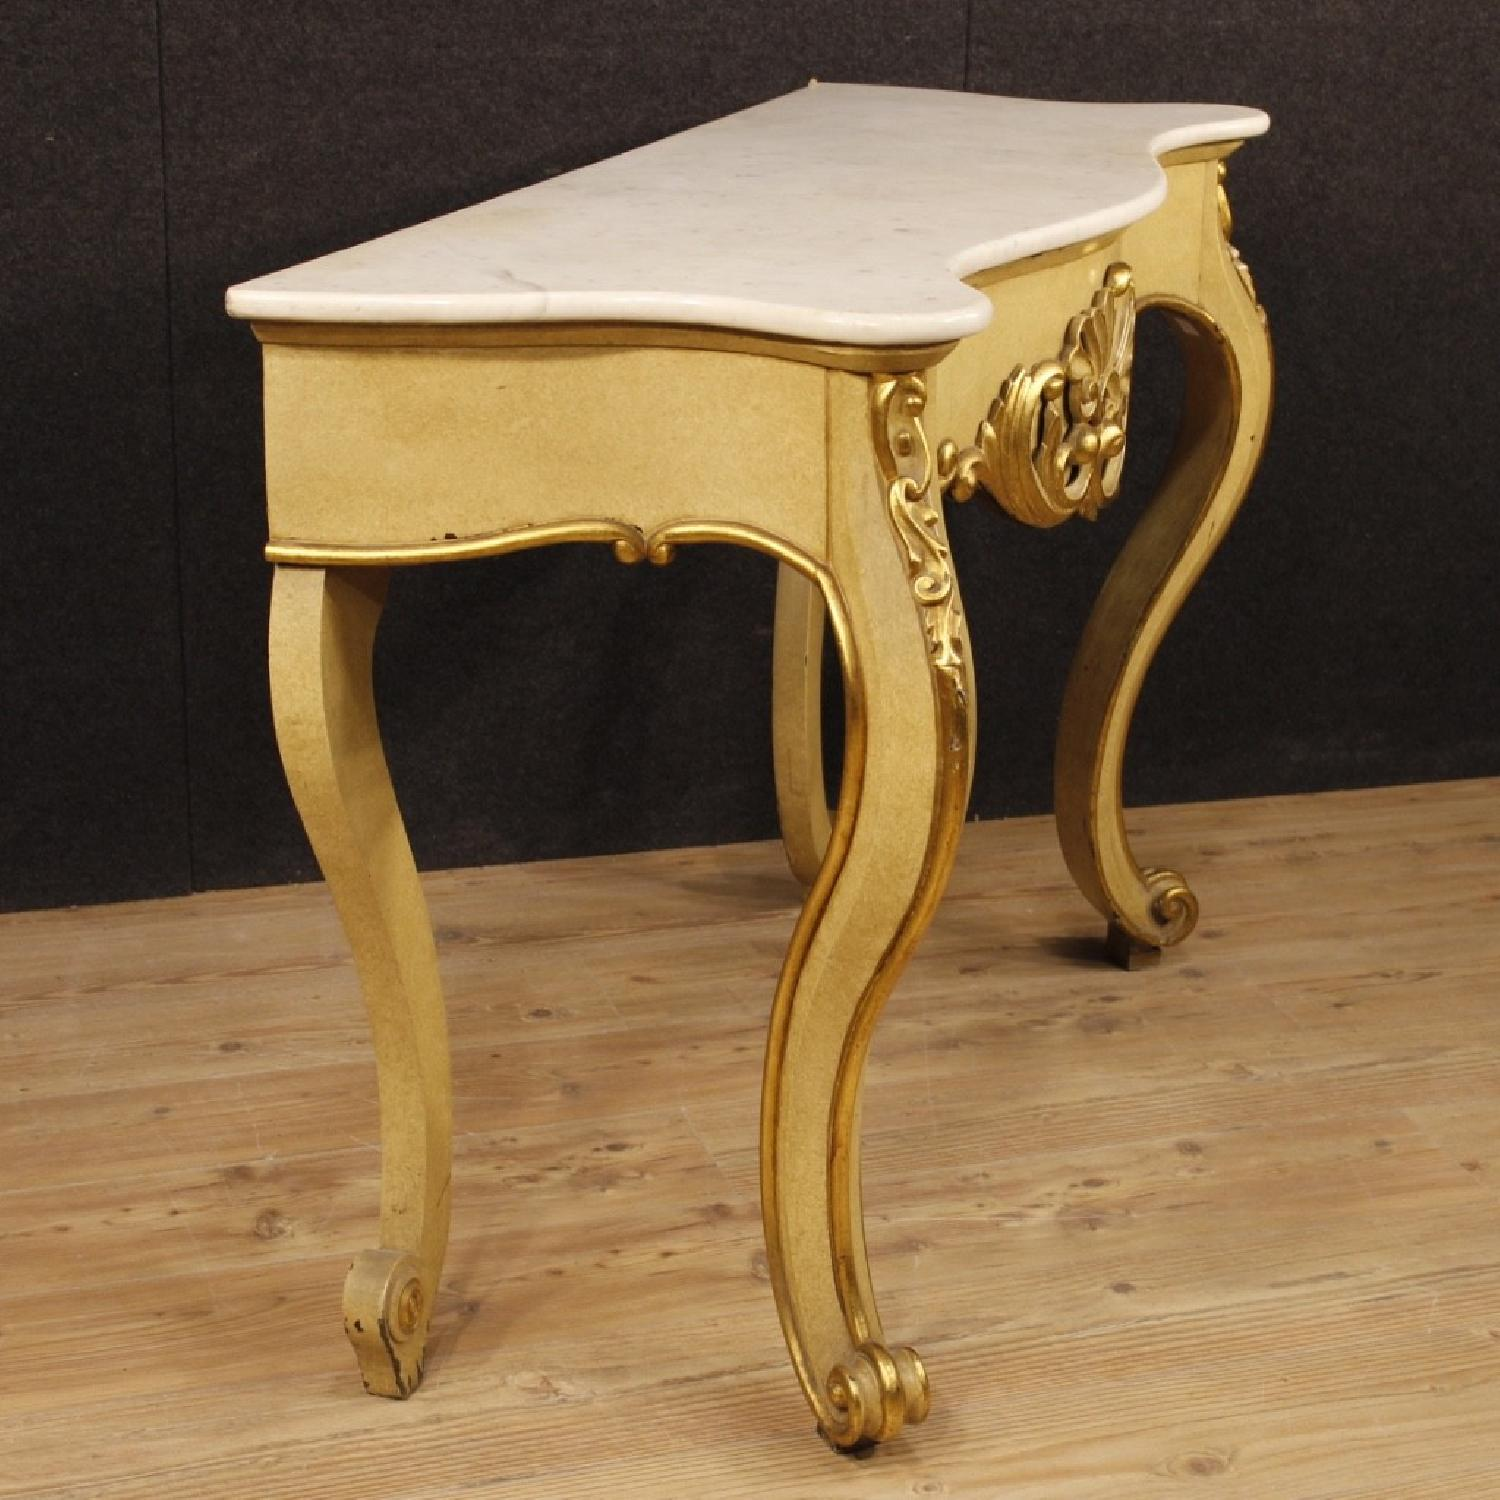 ... Italian Console Table In Lacquered Gilt Wood W/ Marble Top 0 ...